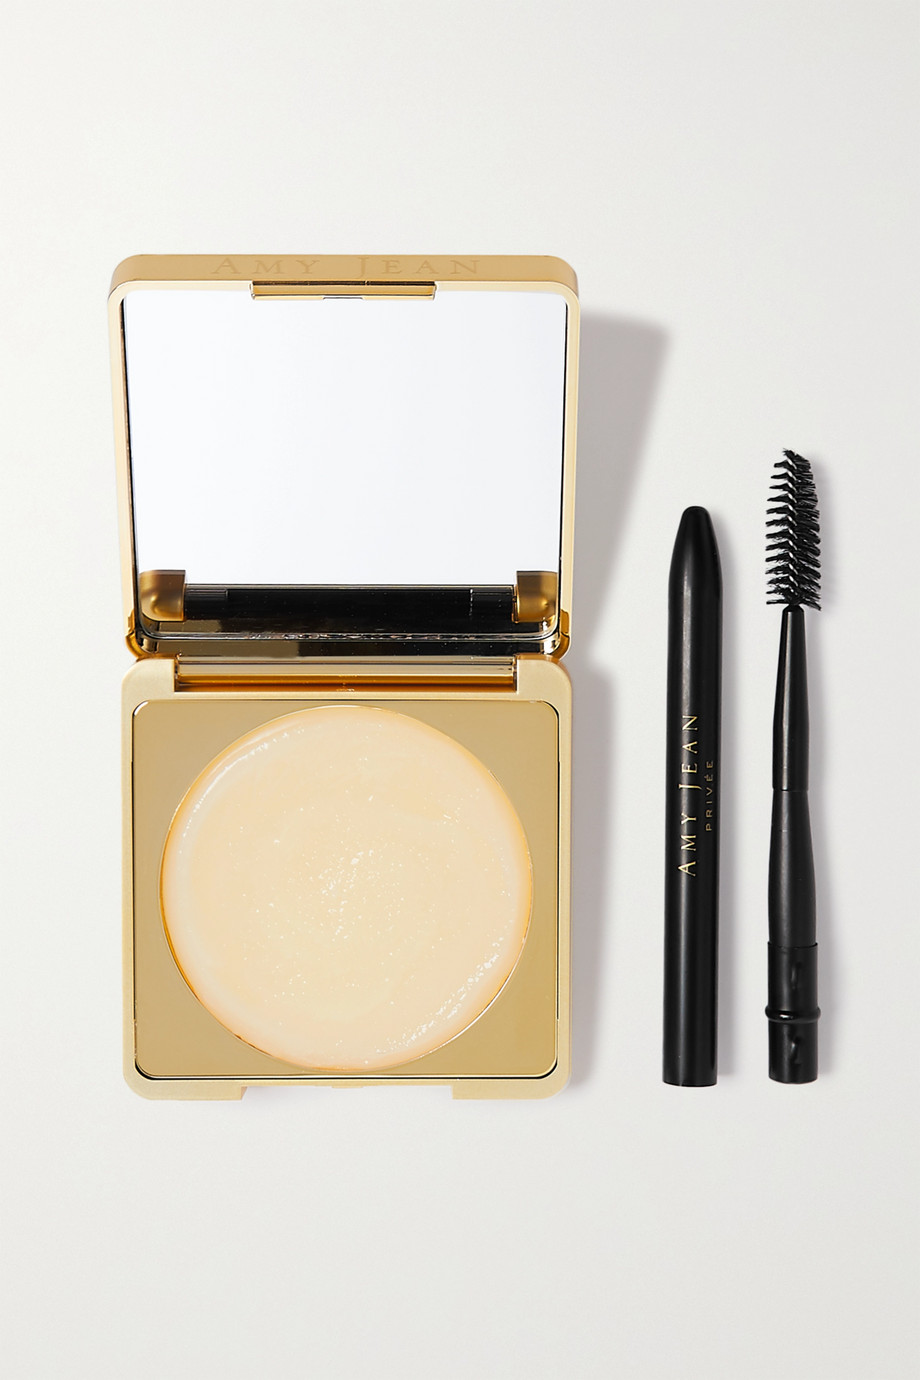 AMY JEAN Brows Daily Brow Mask, 85g